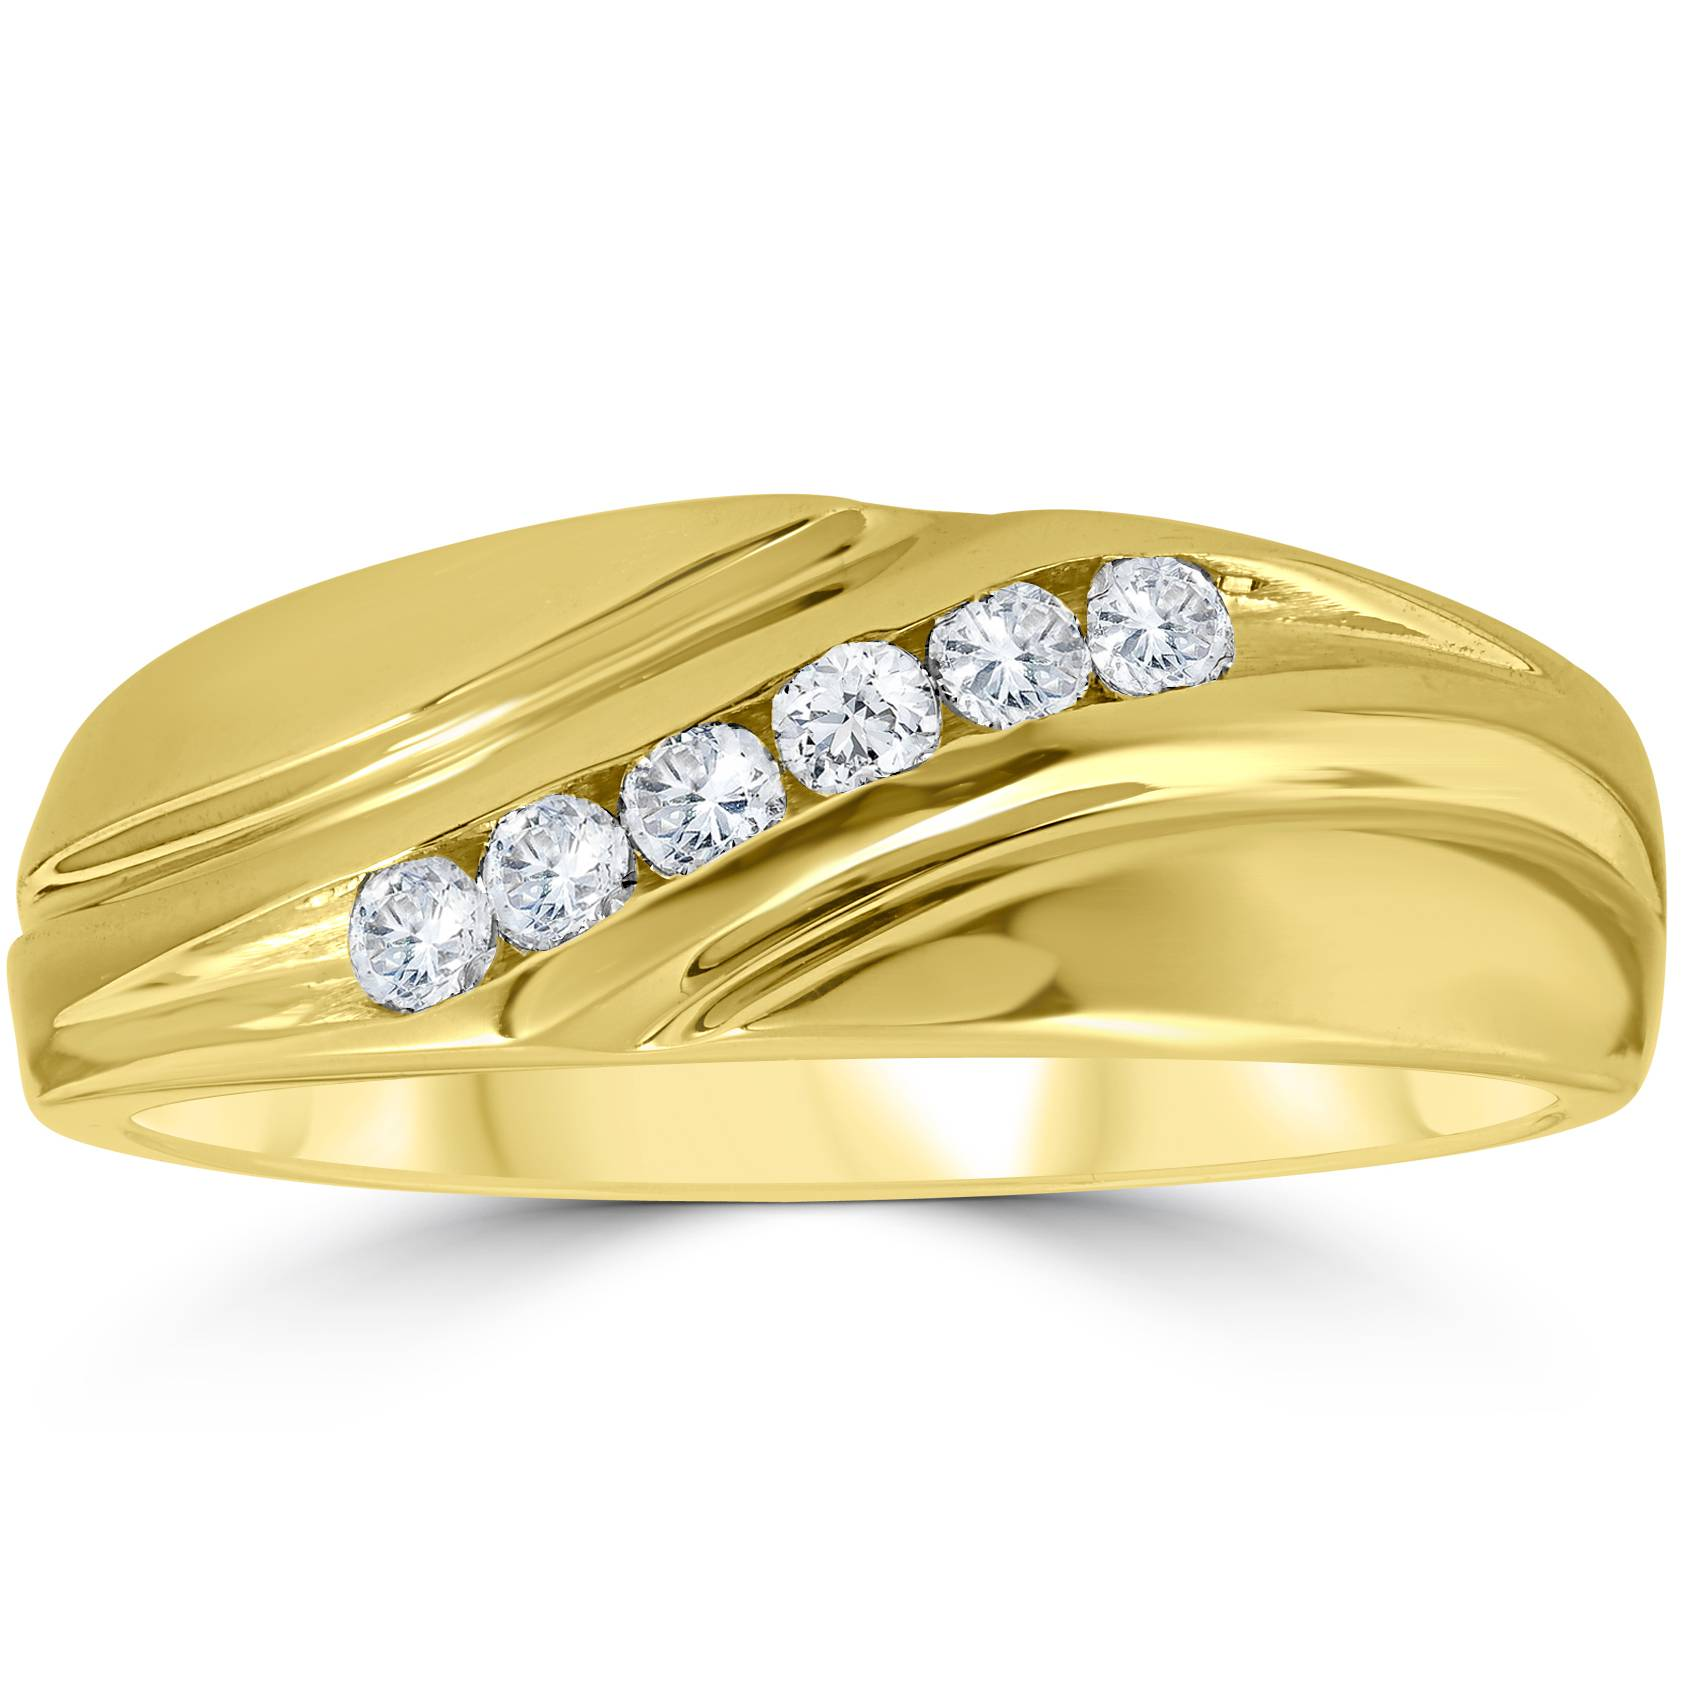 Mens 14K Yellow Gold 1 4ct Diamond Wedding Ring Band by Pompeii3